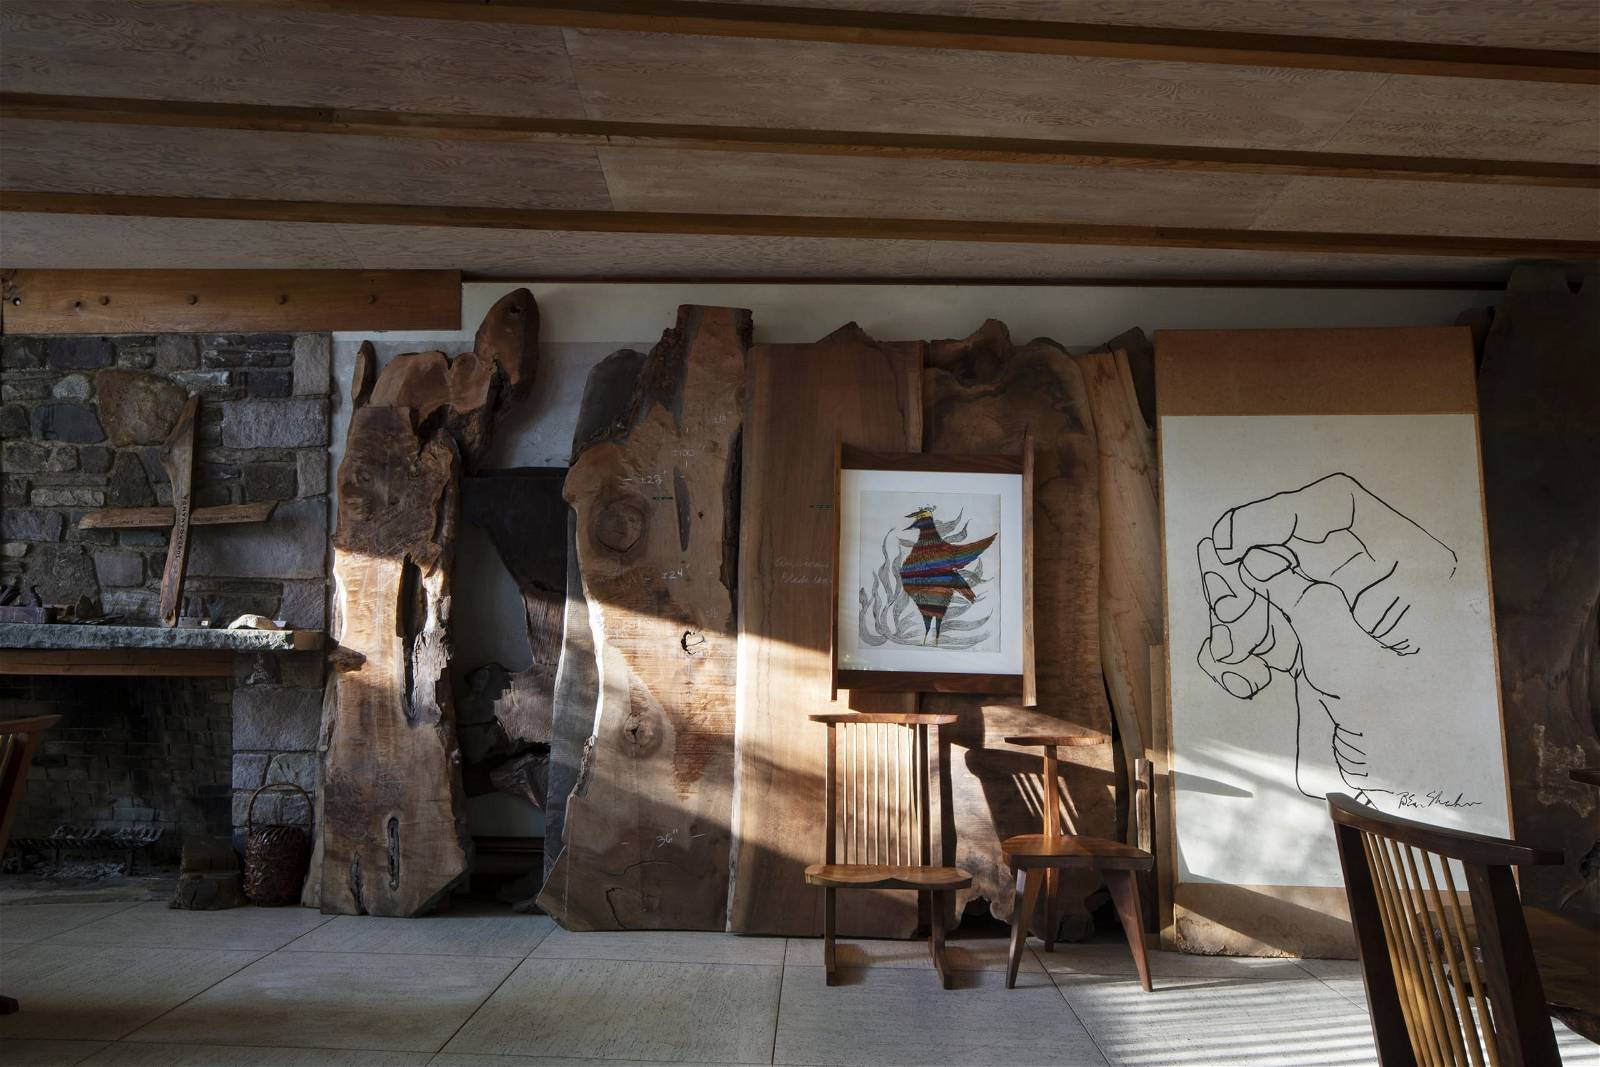 George Nakashima Woodworker's interior, Photo by Elizabeth Felicella, Courtesy of the Japan America Society of Greater Philadelphia